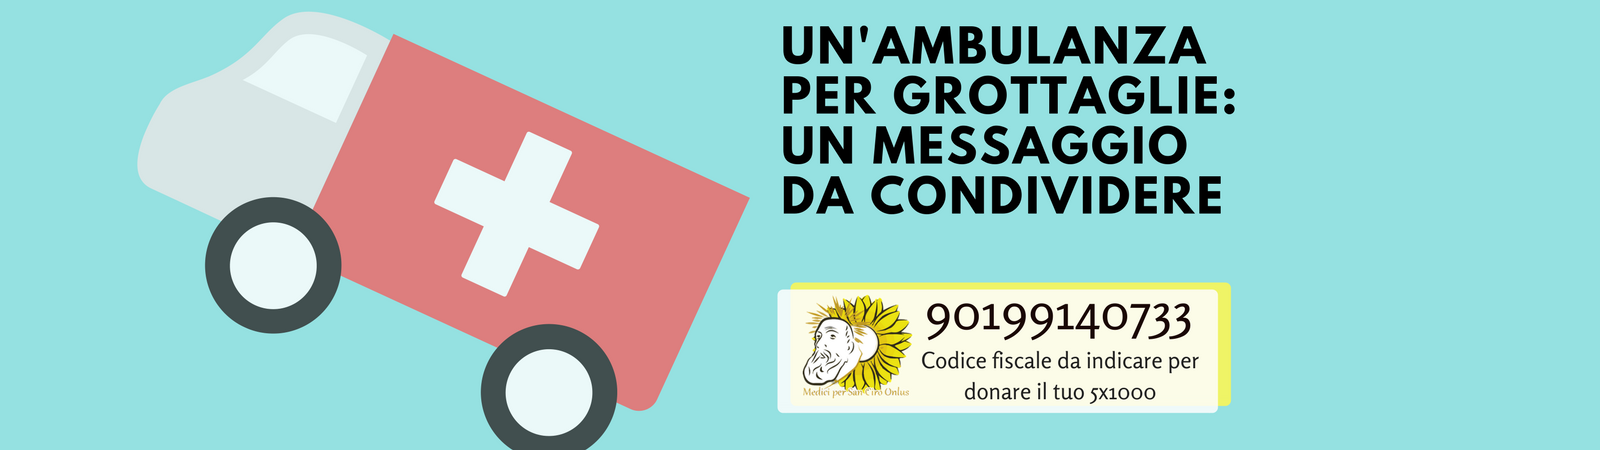 UN'AMBULANZA PER GROTTAGLIE